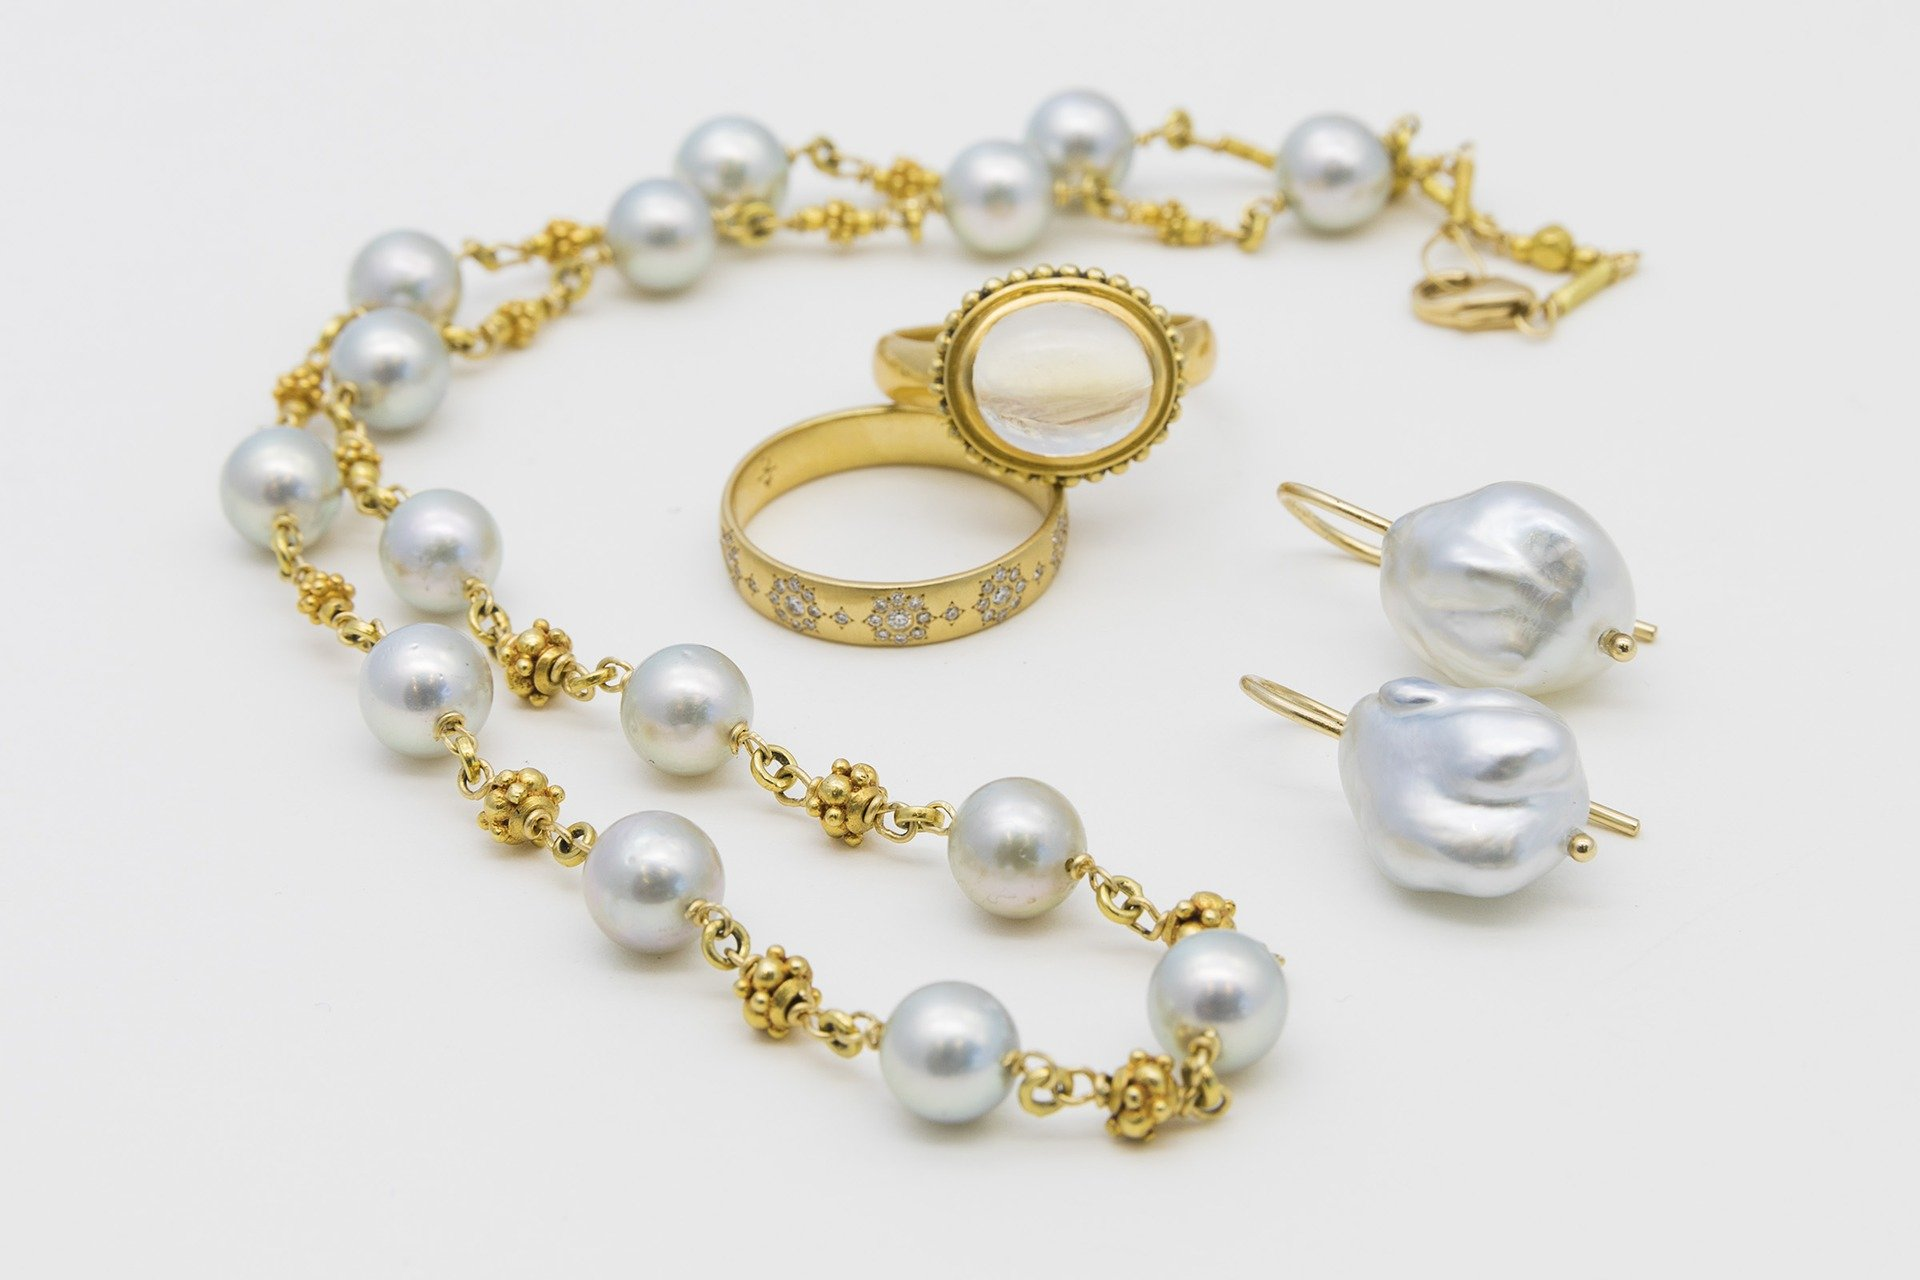 Pearls and Gold Collection